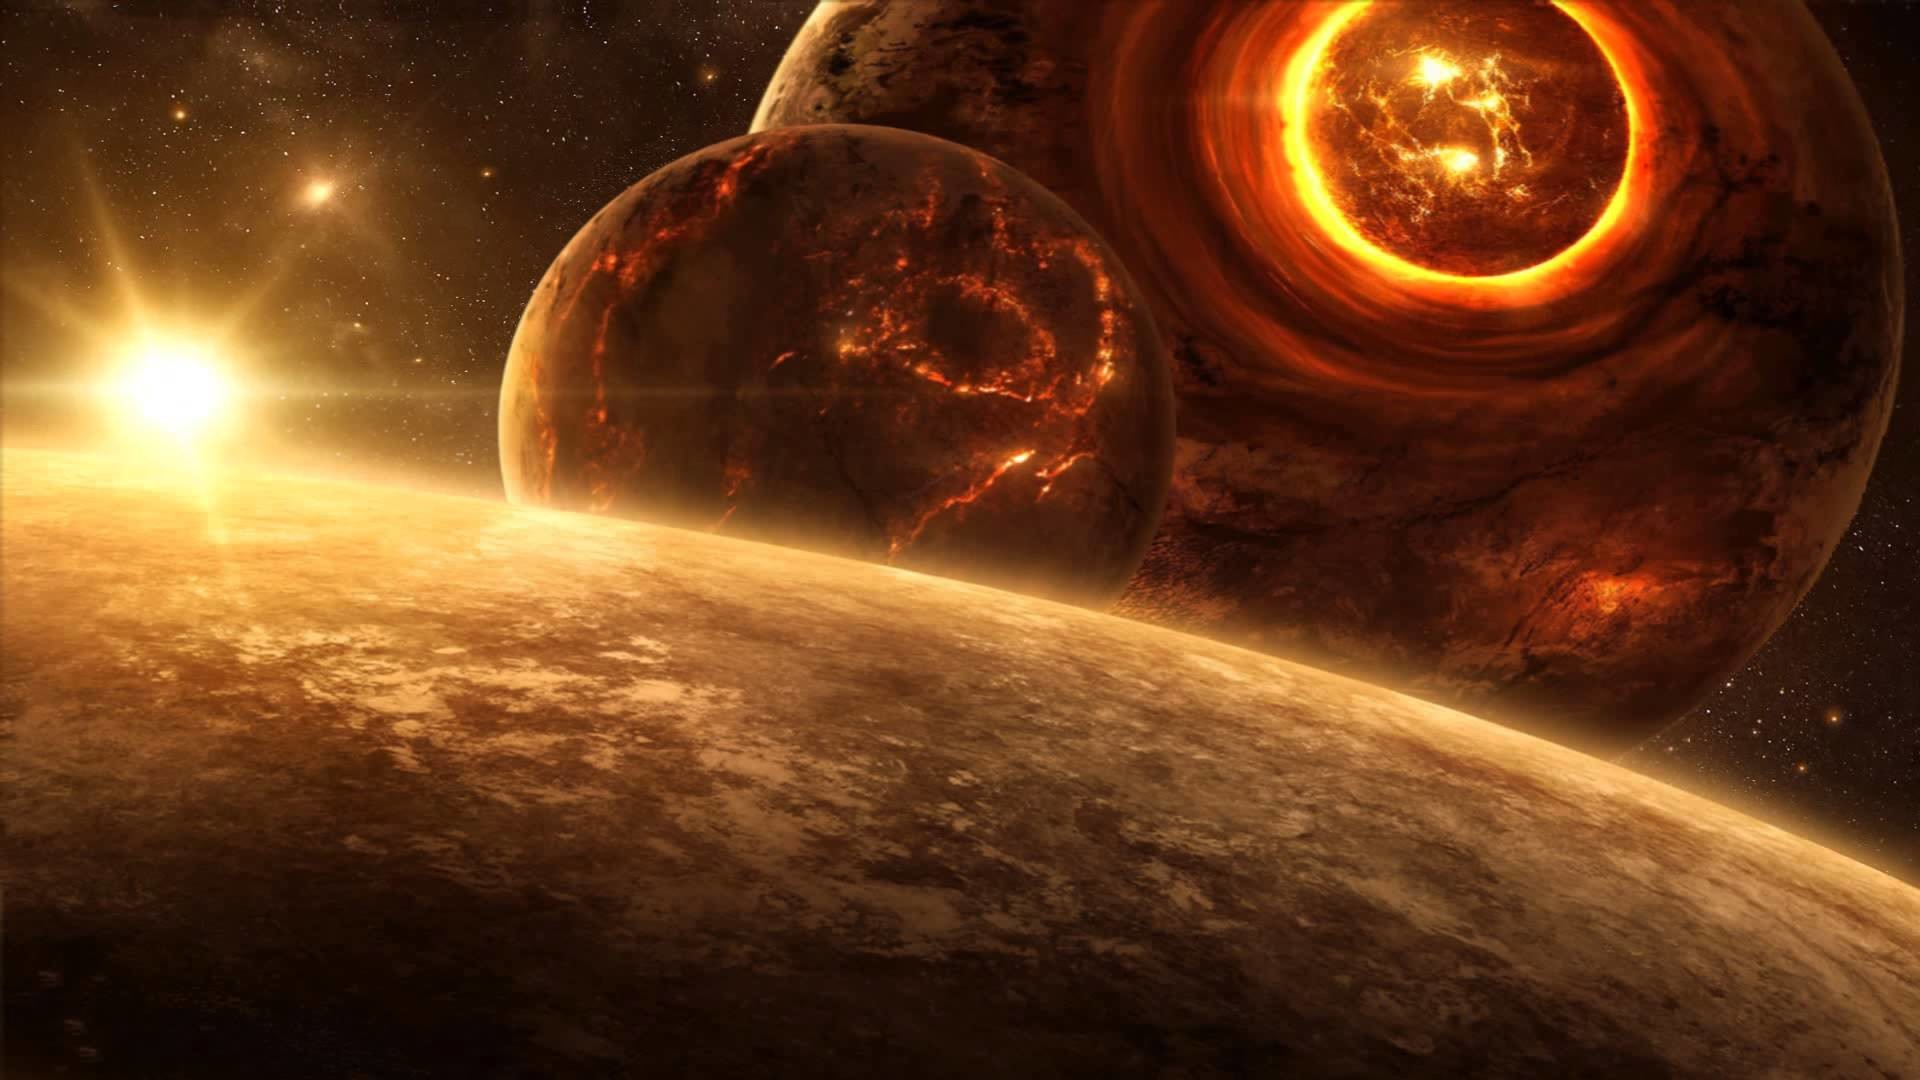 Download Wallpaper 2780x2780 Planet Galaxy Universe: Space Animated Wallpaper (67+ Images